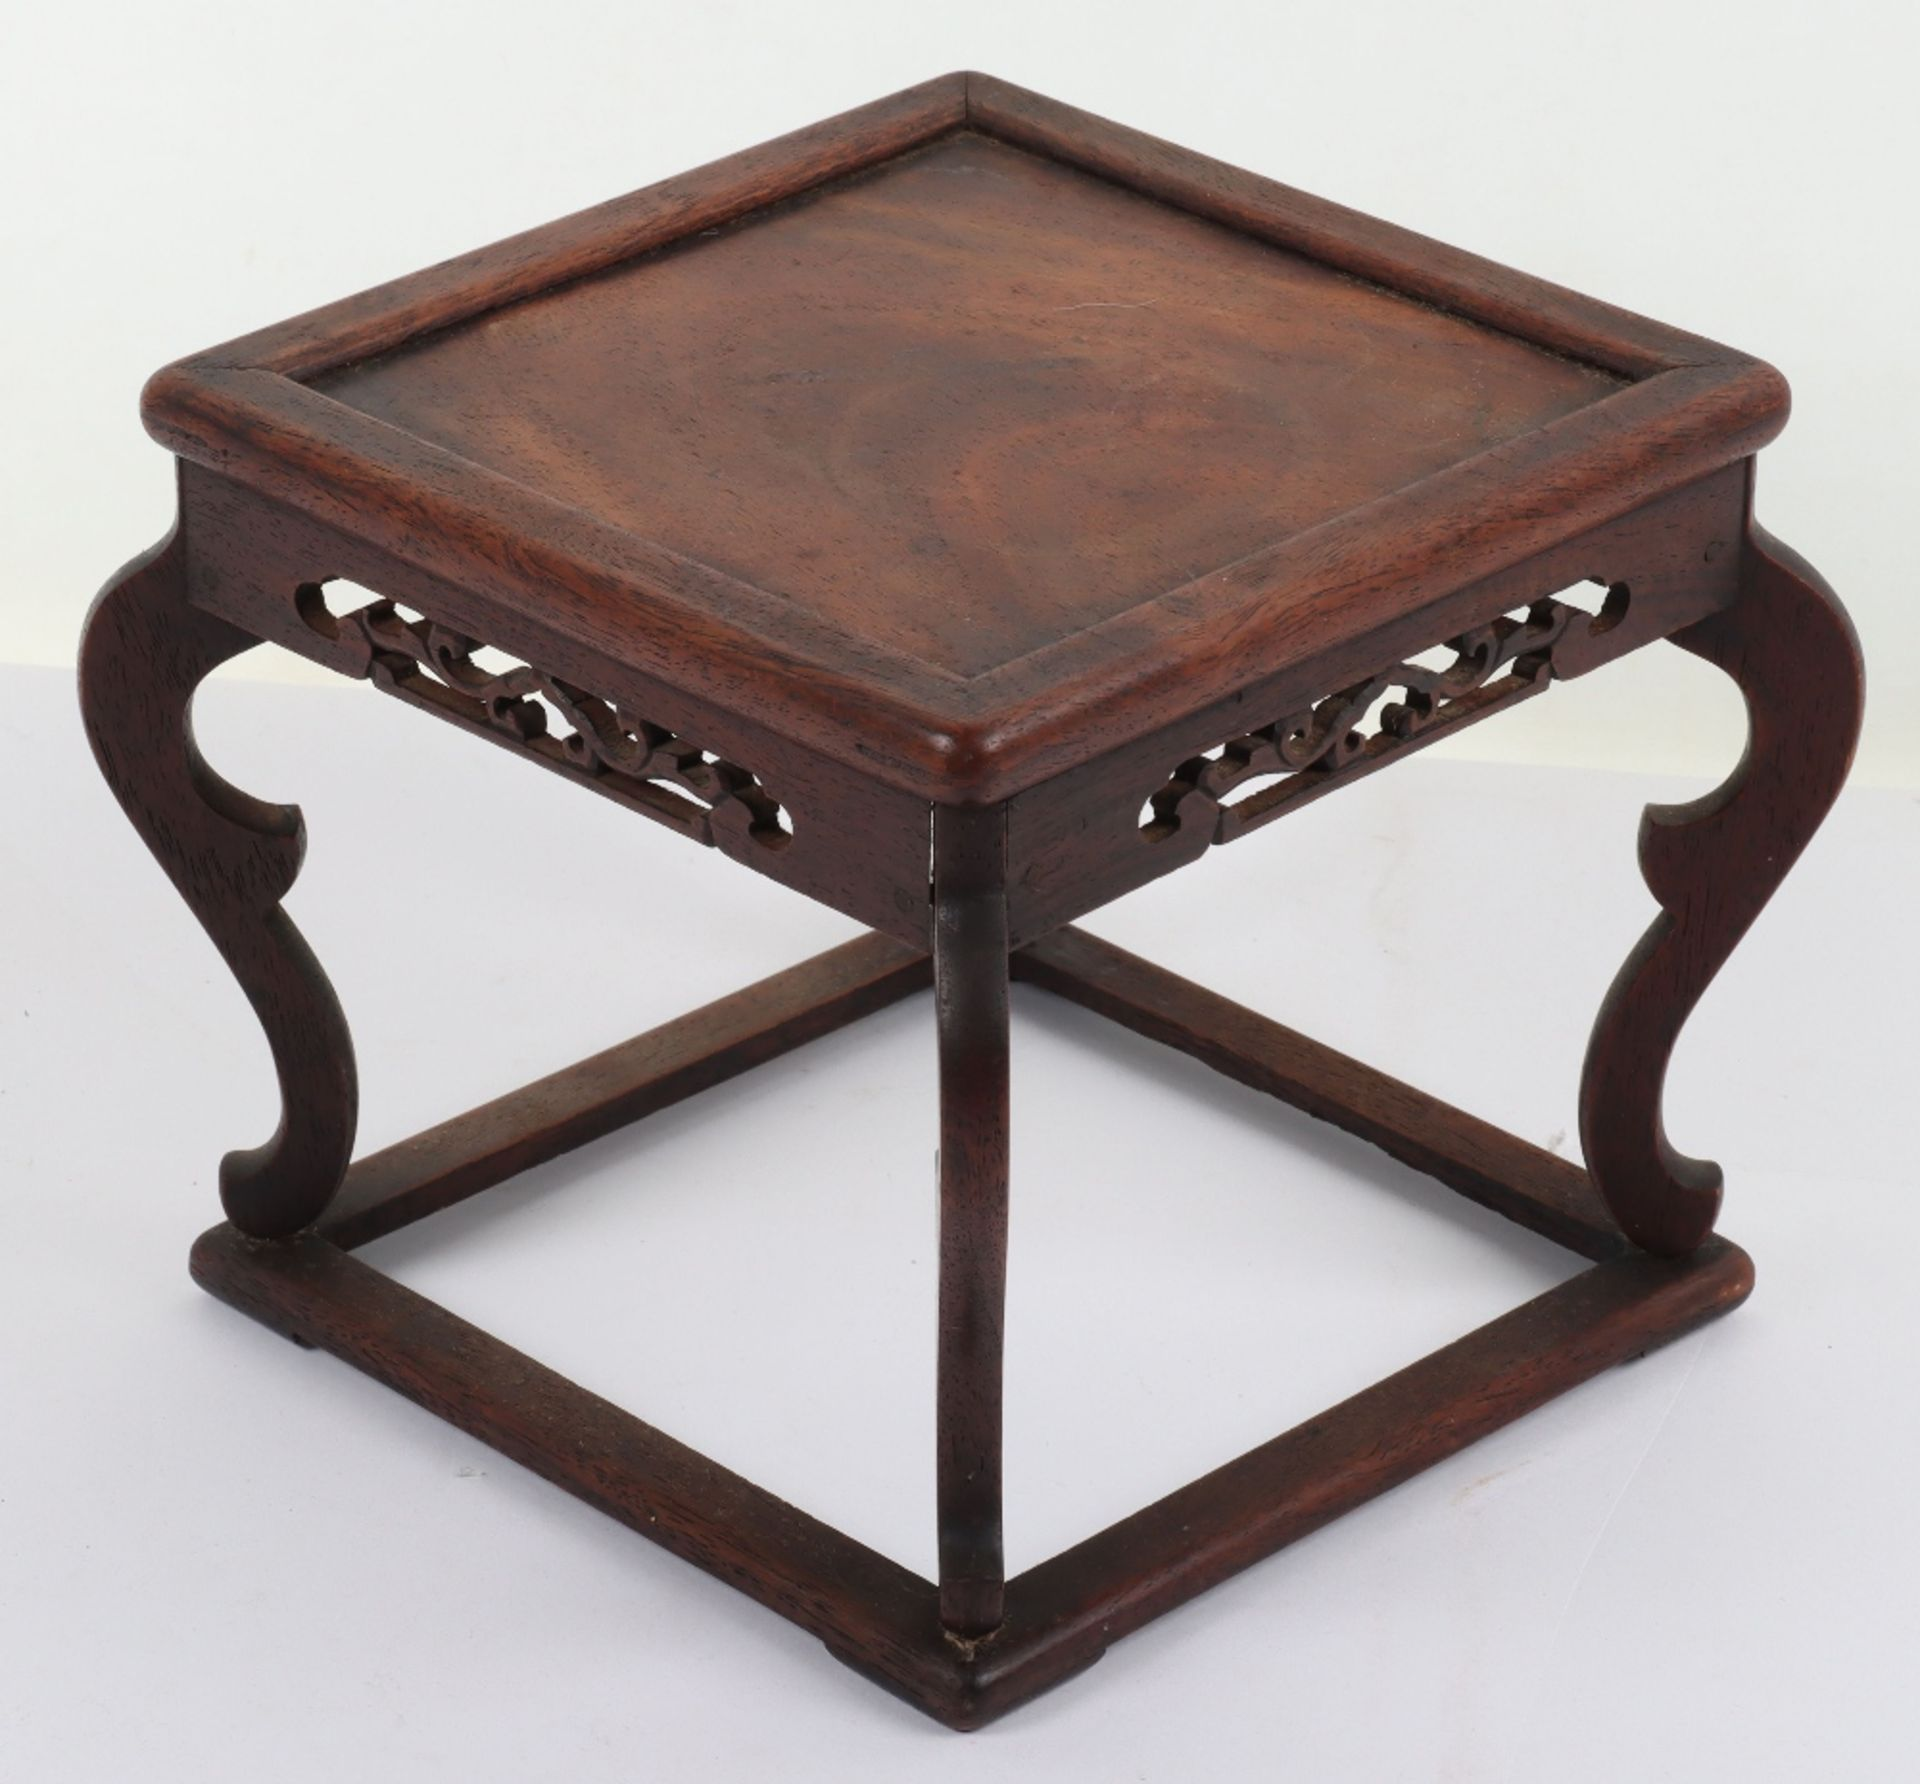 A 19th century small Chinese hardwood carved candle stand - Image 4 of 6